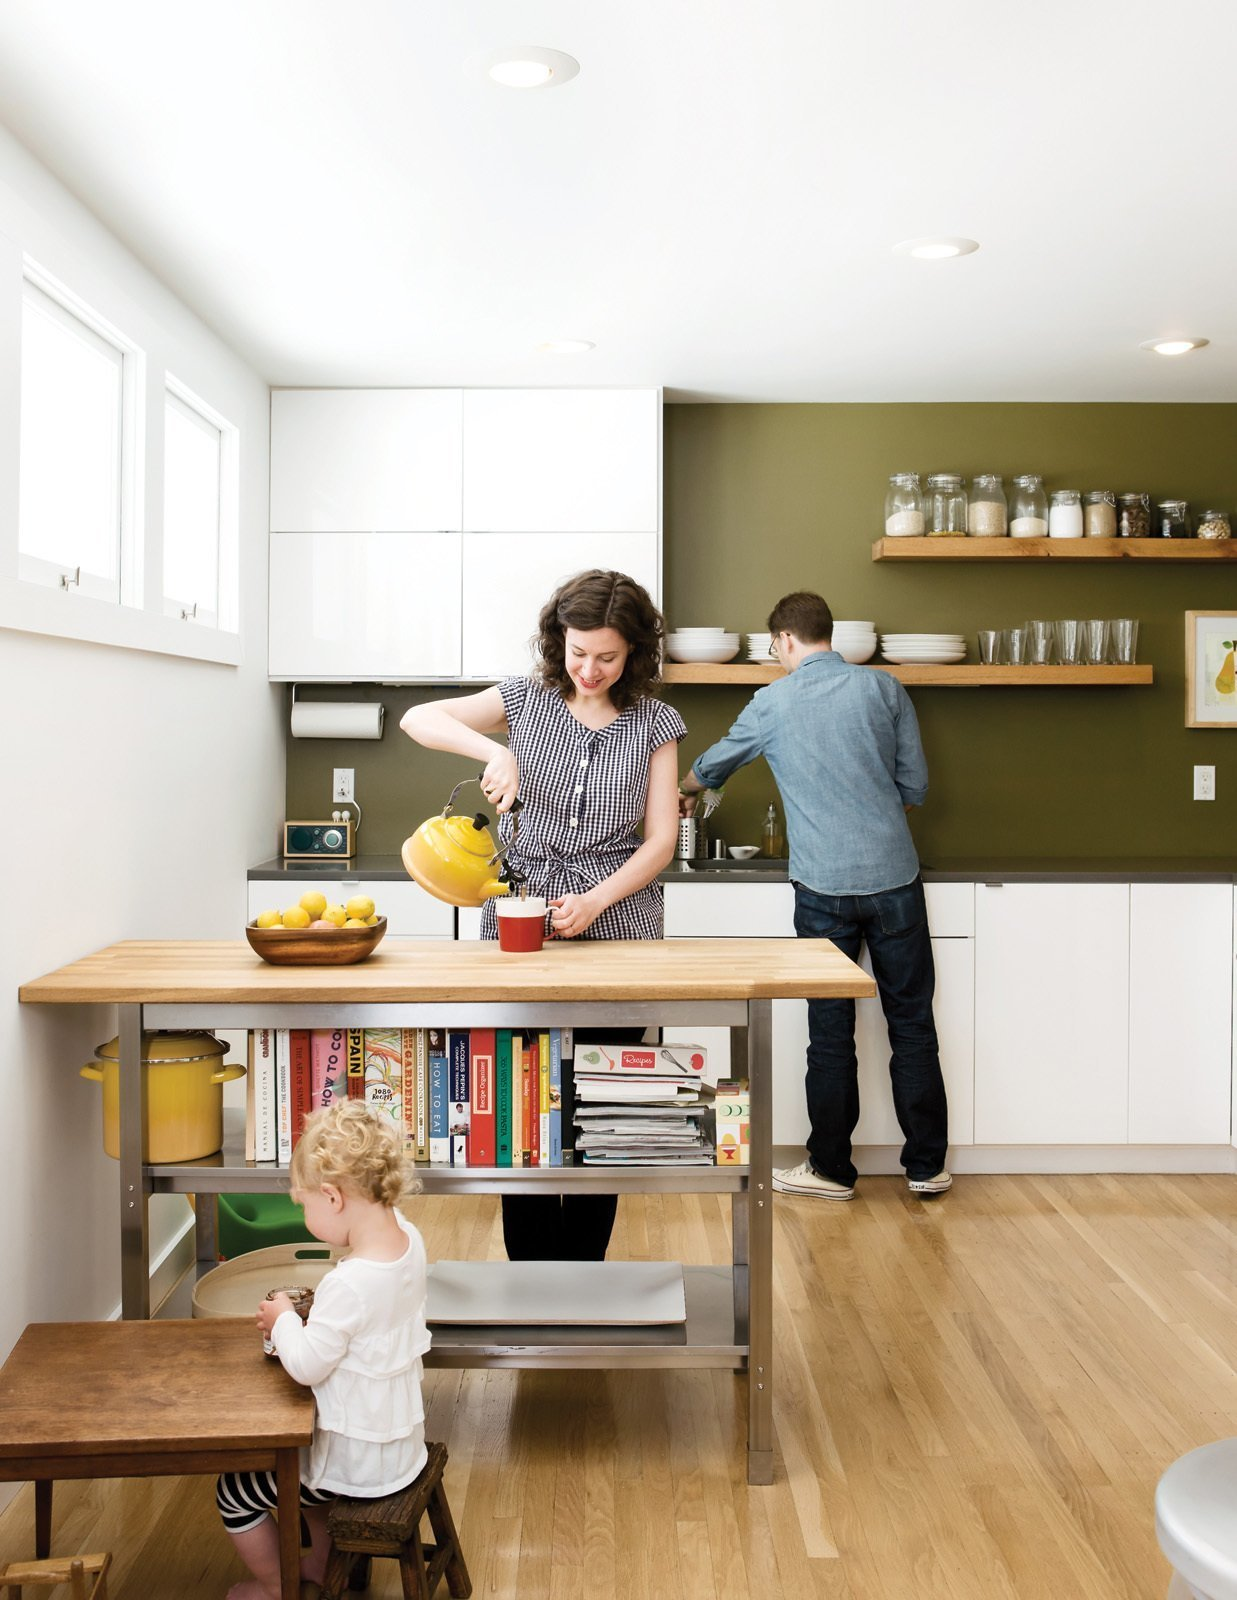 Kitchen, White Cabinet, Ceiling Lighting, Drop In Sink, Open Cabinet, Light Hardwood Floor, and Wood Counter Custom floating shelves and a book shelf under a movable island counter cleans a fuss-free, streamlined look in this kitchen.  Best Photos from 4 Decluttering Tips From Organizing Master Marie Kondo